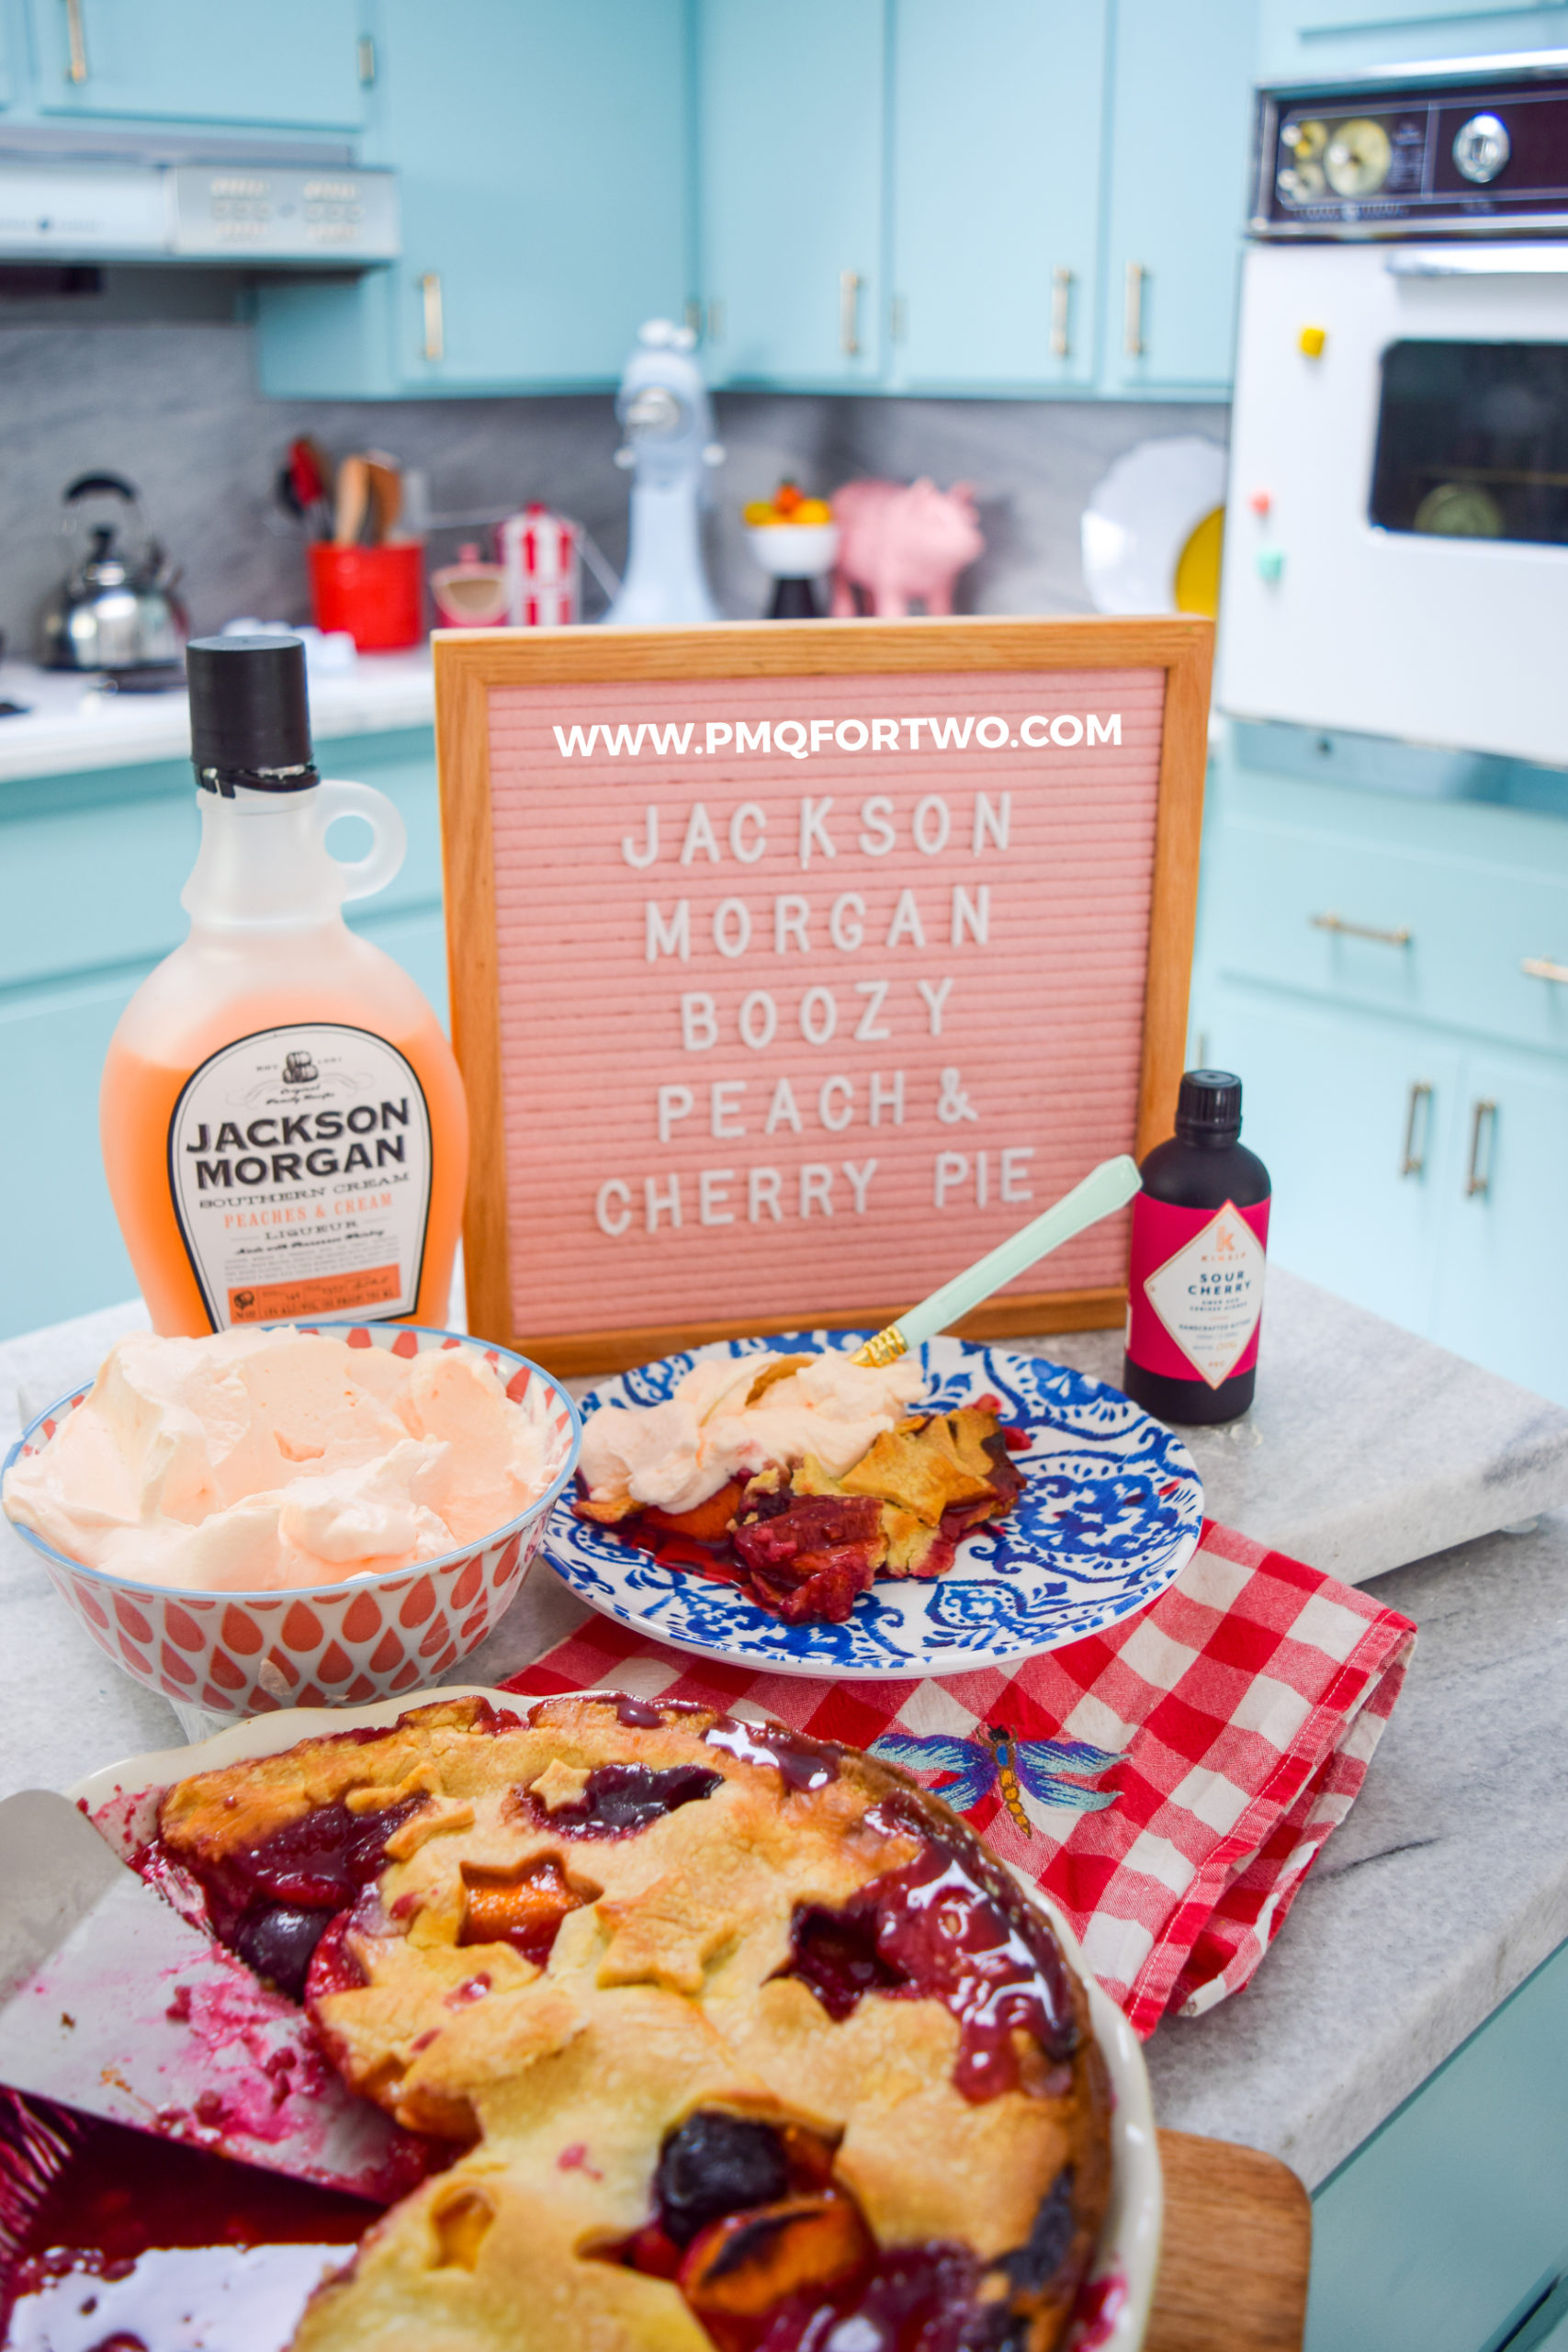 What I love about Jackson Morgan Southern Cream, is that it works in food recipes just as well as in cocktails! Use the different flavours to spice things up.